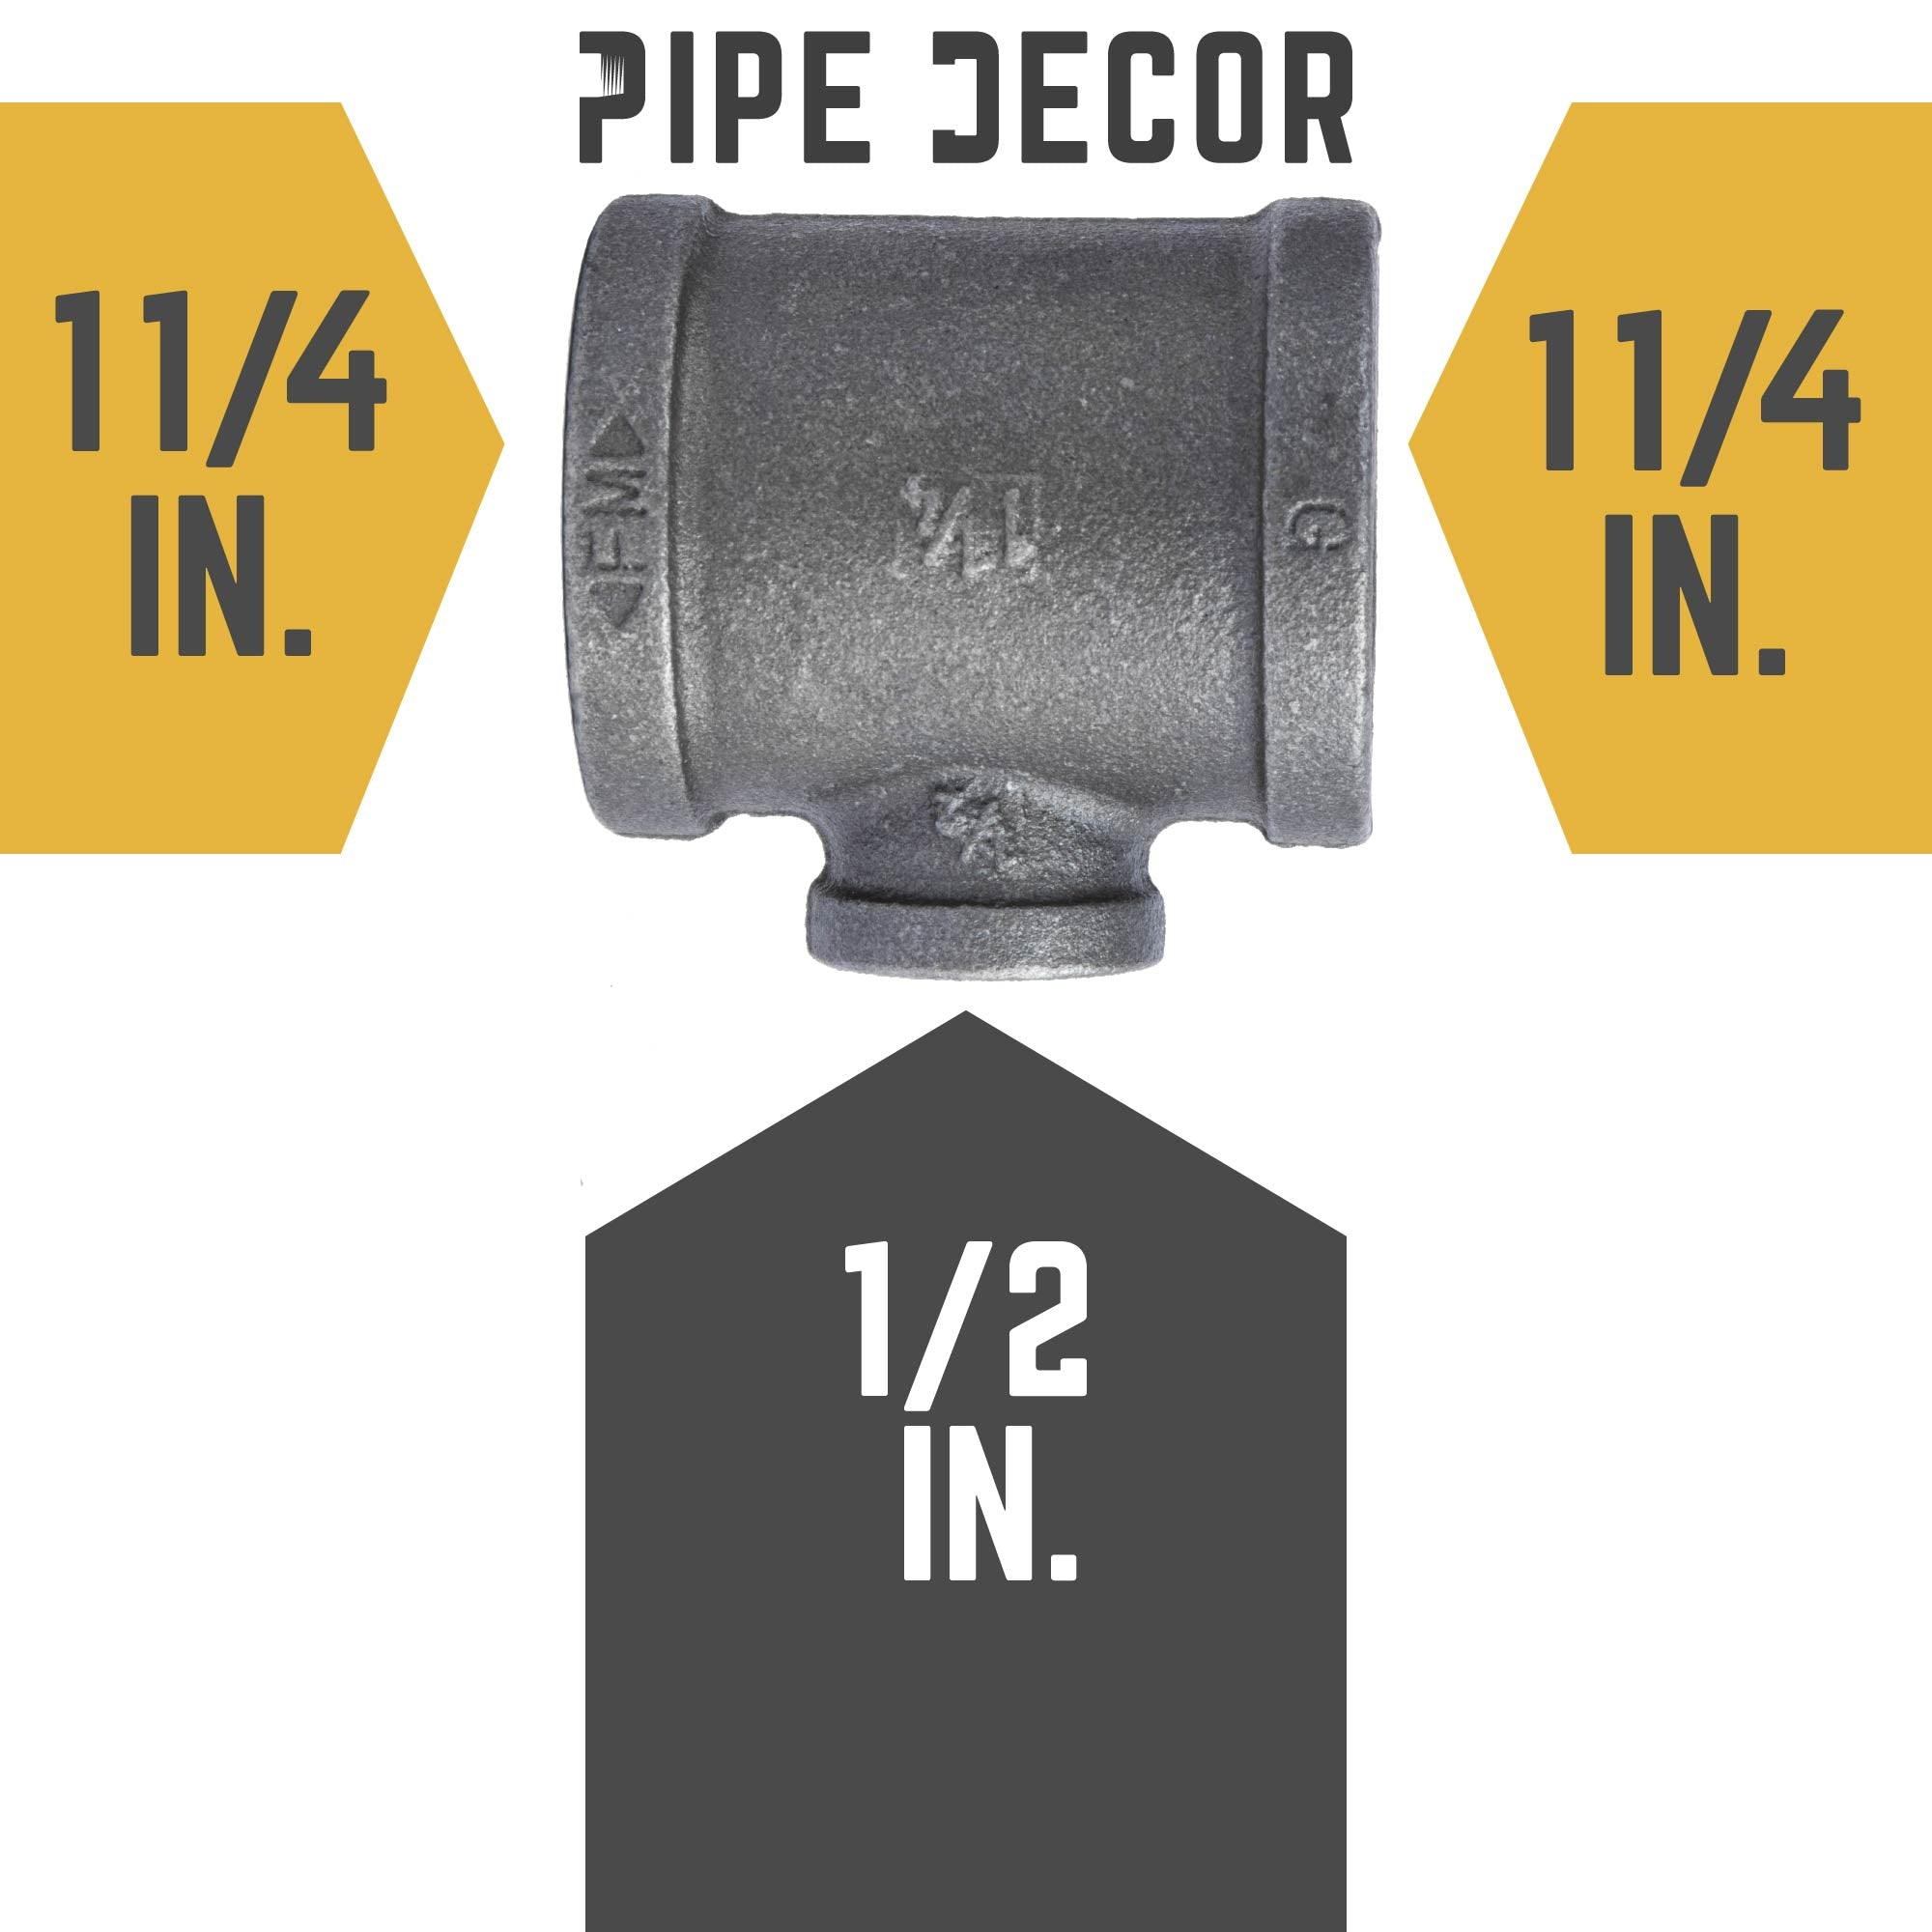 1 1/4 in. X 1 1/4 in. X 1/2 in. Black Reducing Tee - Pipe Decor